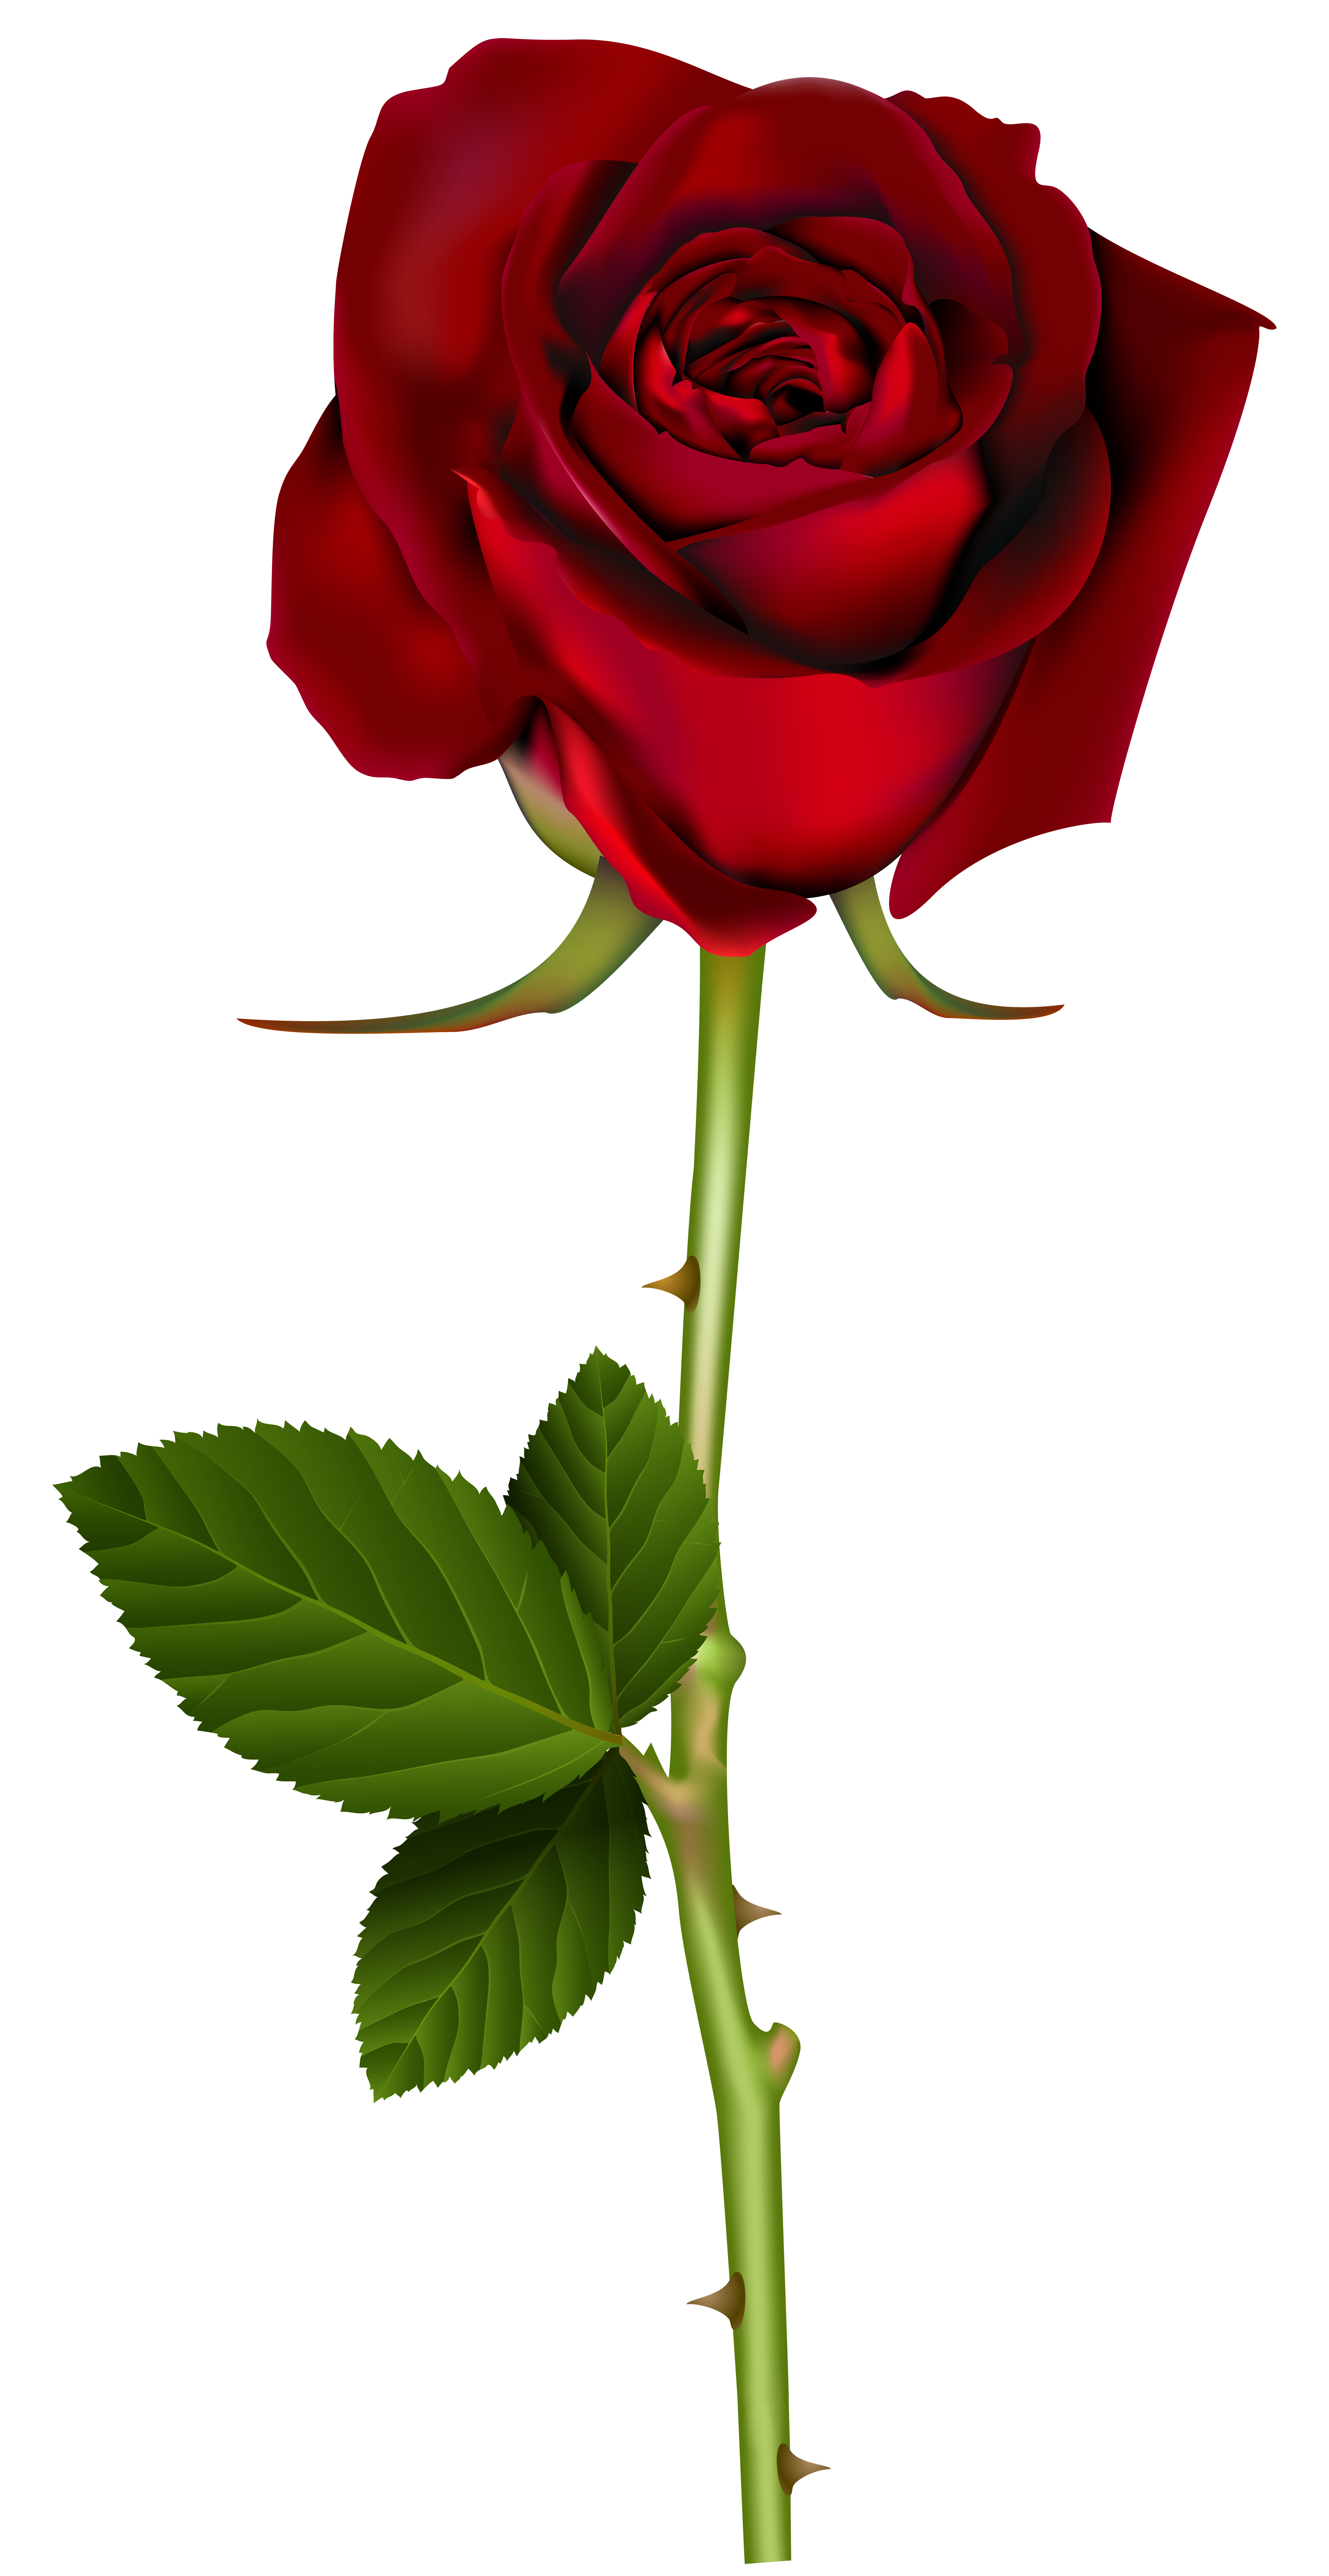 Rose png image. Red transparent gallery yopriceville